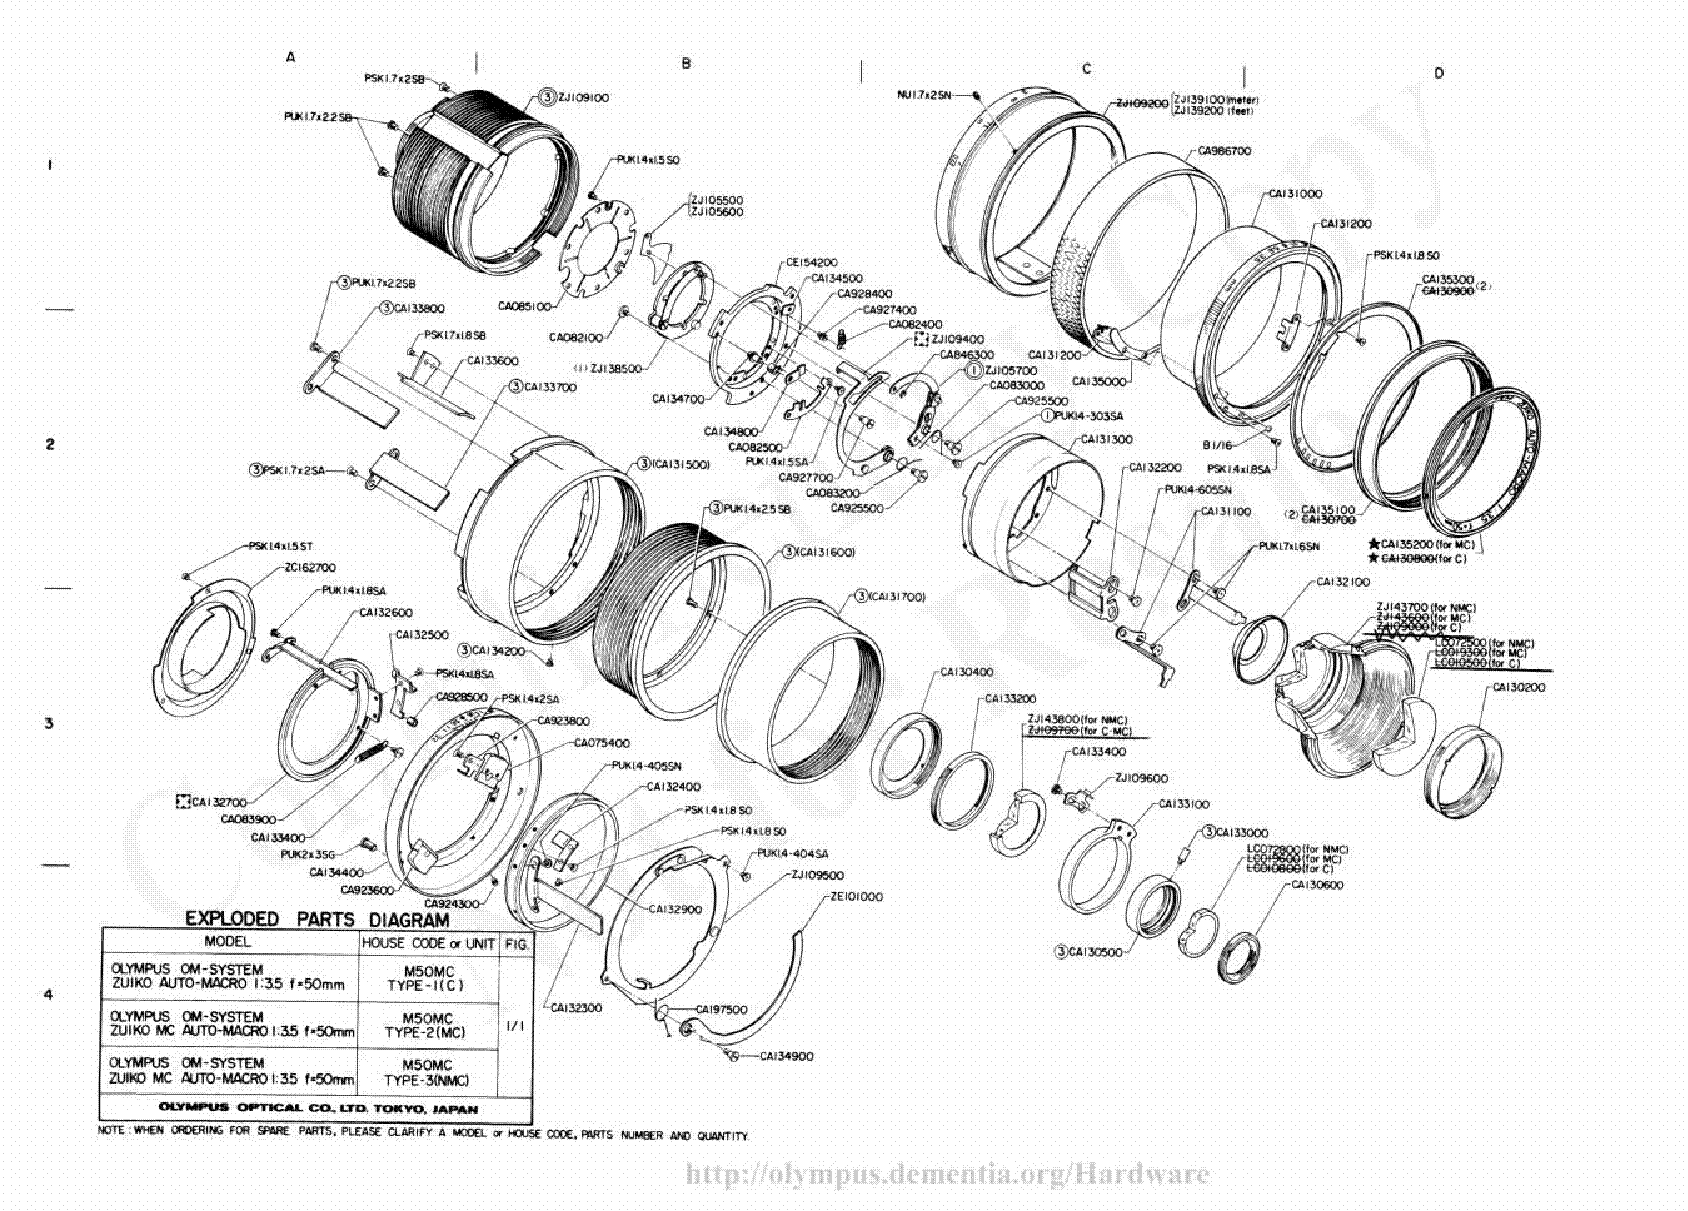 olympus 50mm f3 5 macro exploded parts diagram service